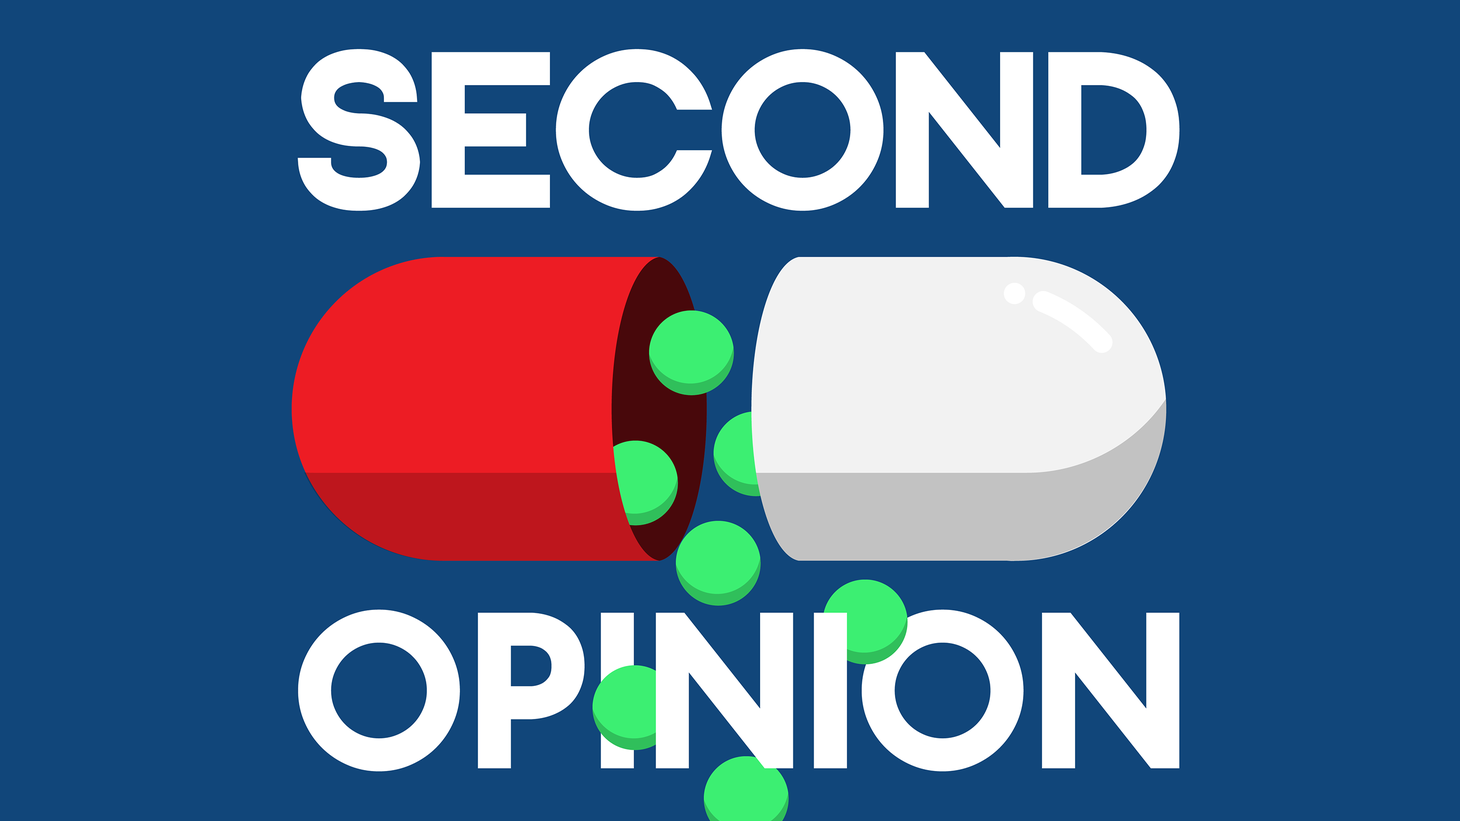 Until we address the antecedents of drug use, the problem is unlikely to go away.